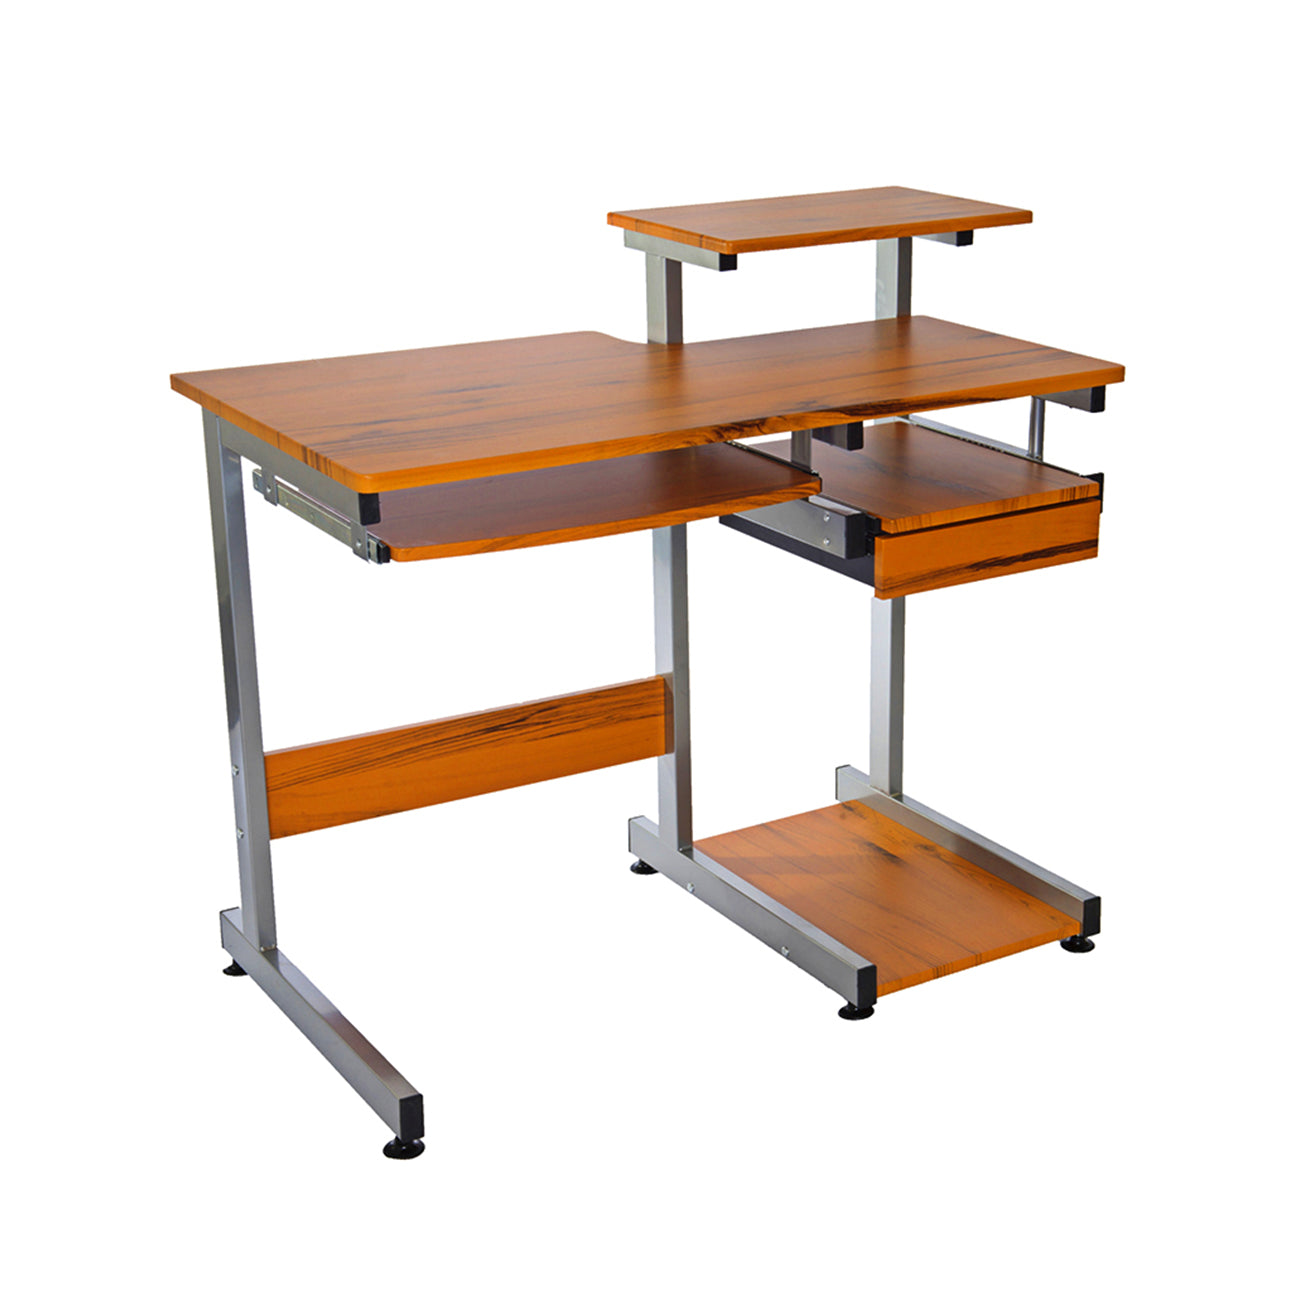 fampf frame malaysia wooden with top workstation f steel ff aesthetics table black desk